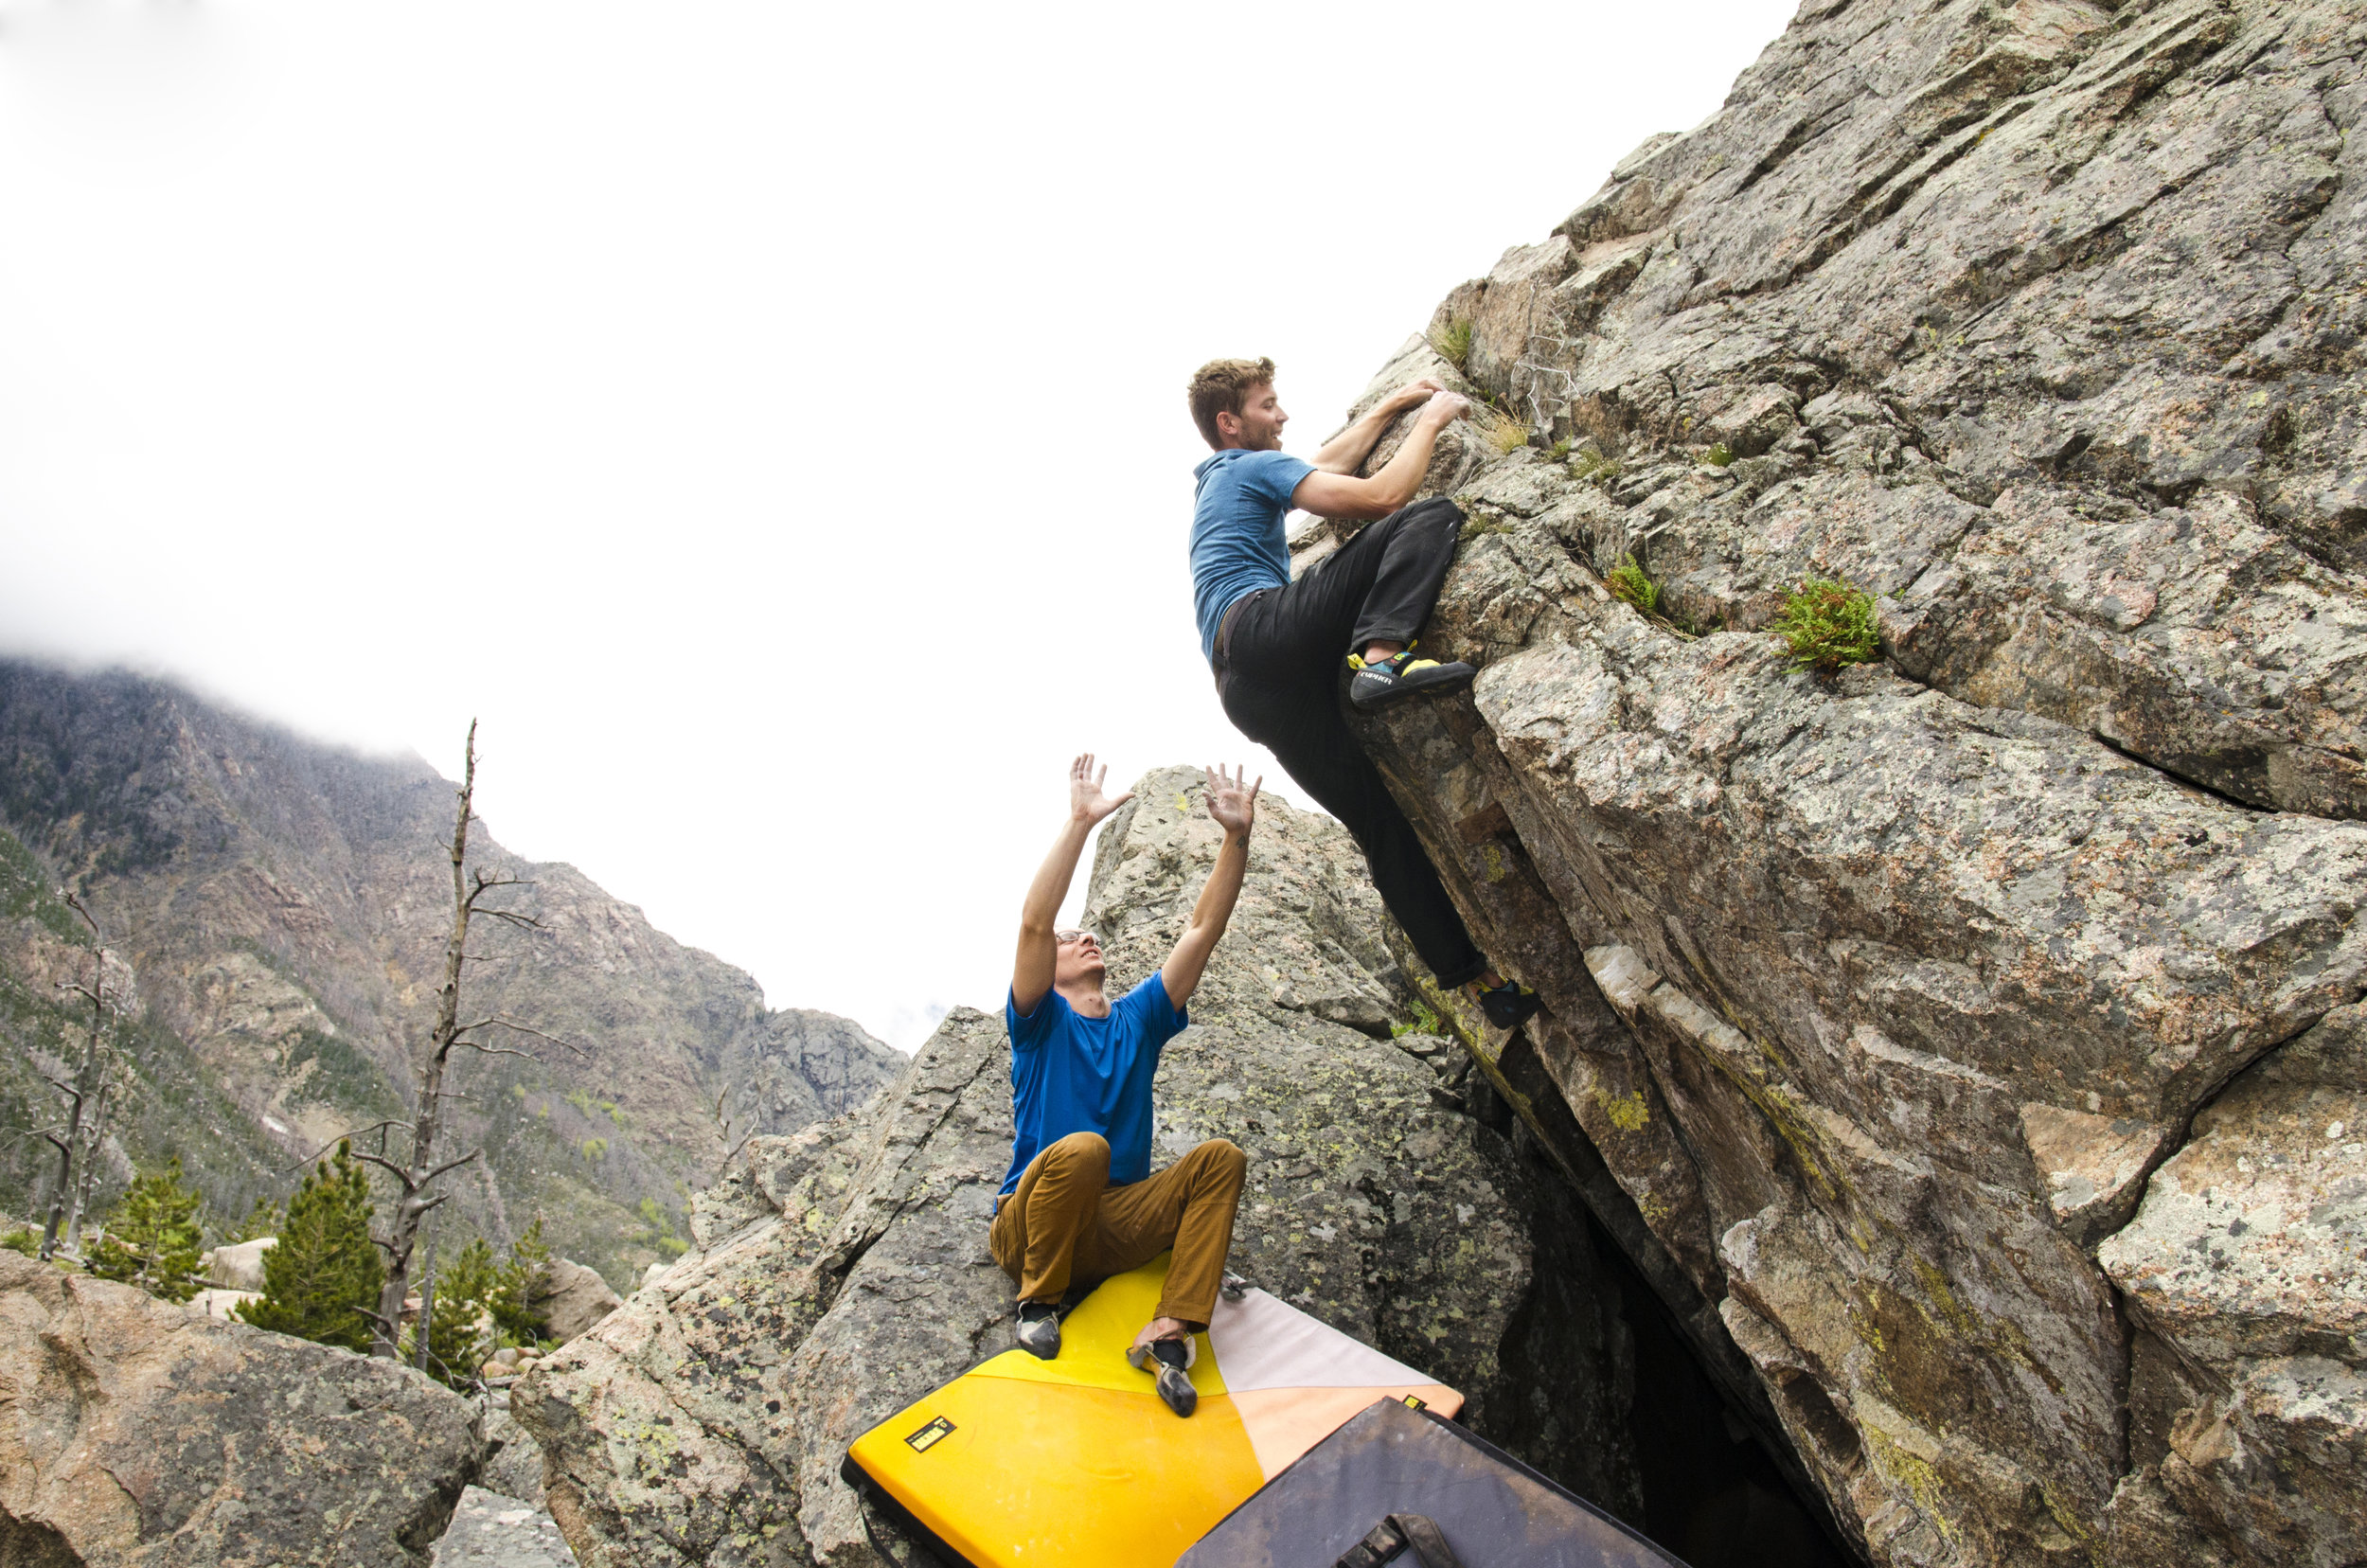 Ben Hoiness and Alton Richardson explore some boulders off the East Rosebud Lake trail. Photo by Karissa Frye